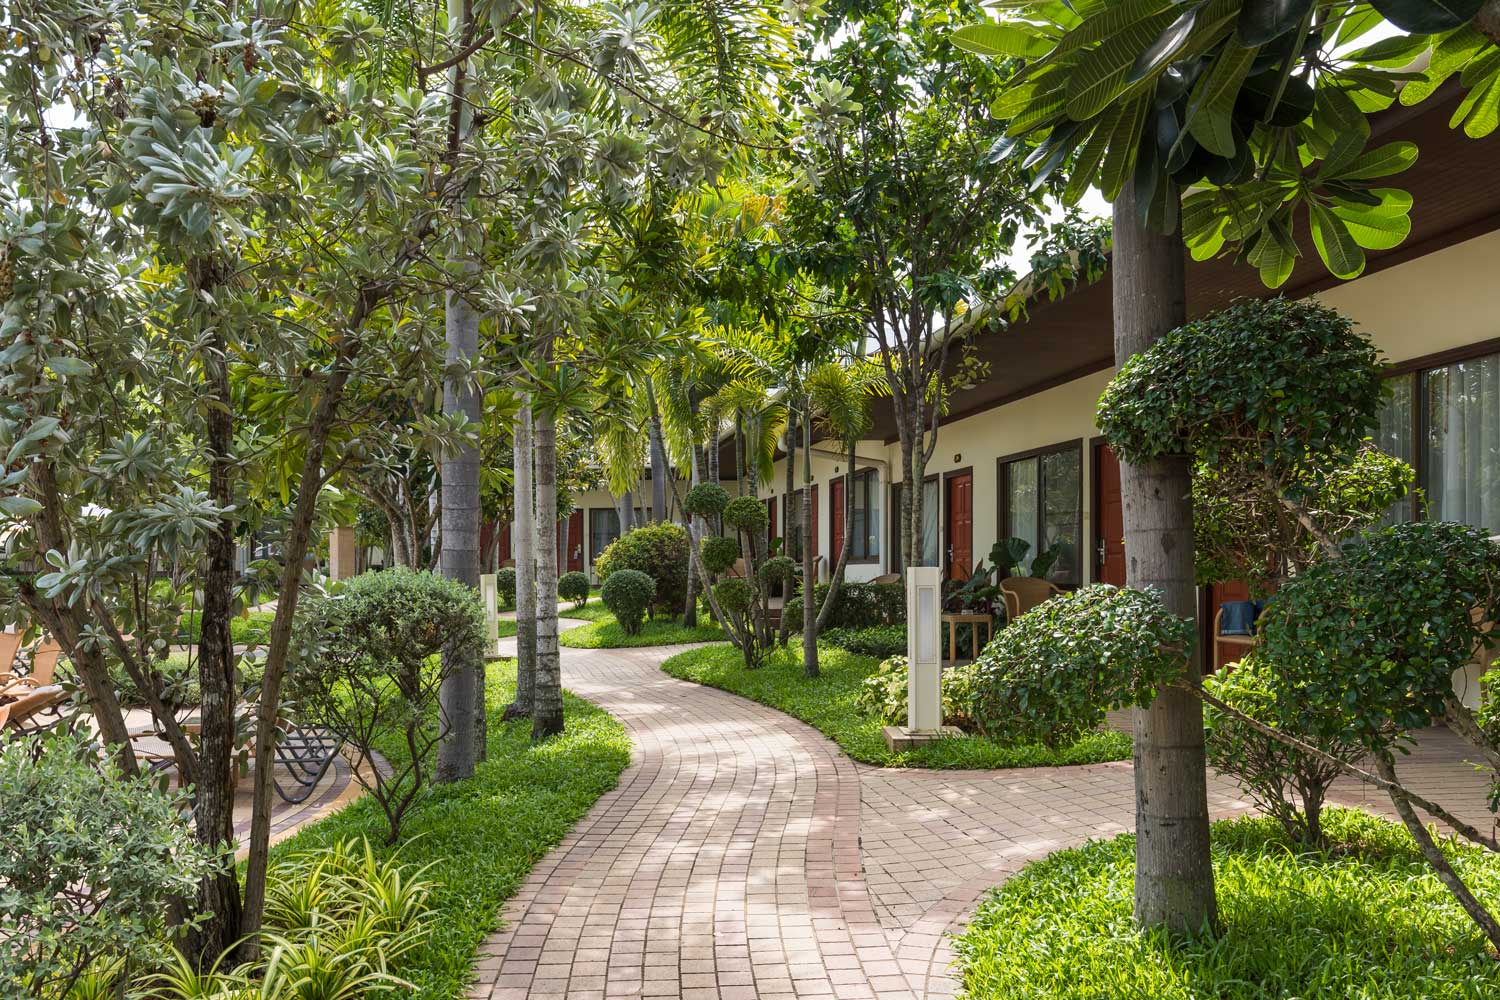 Walkway with trees in the garden of Thai Garden Resort in Pattaya, Thailand